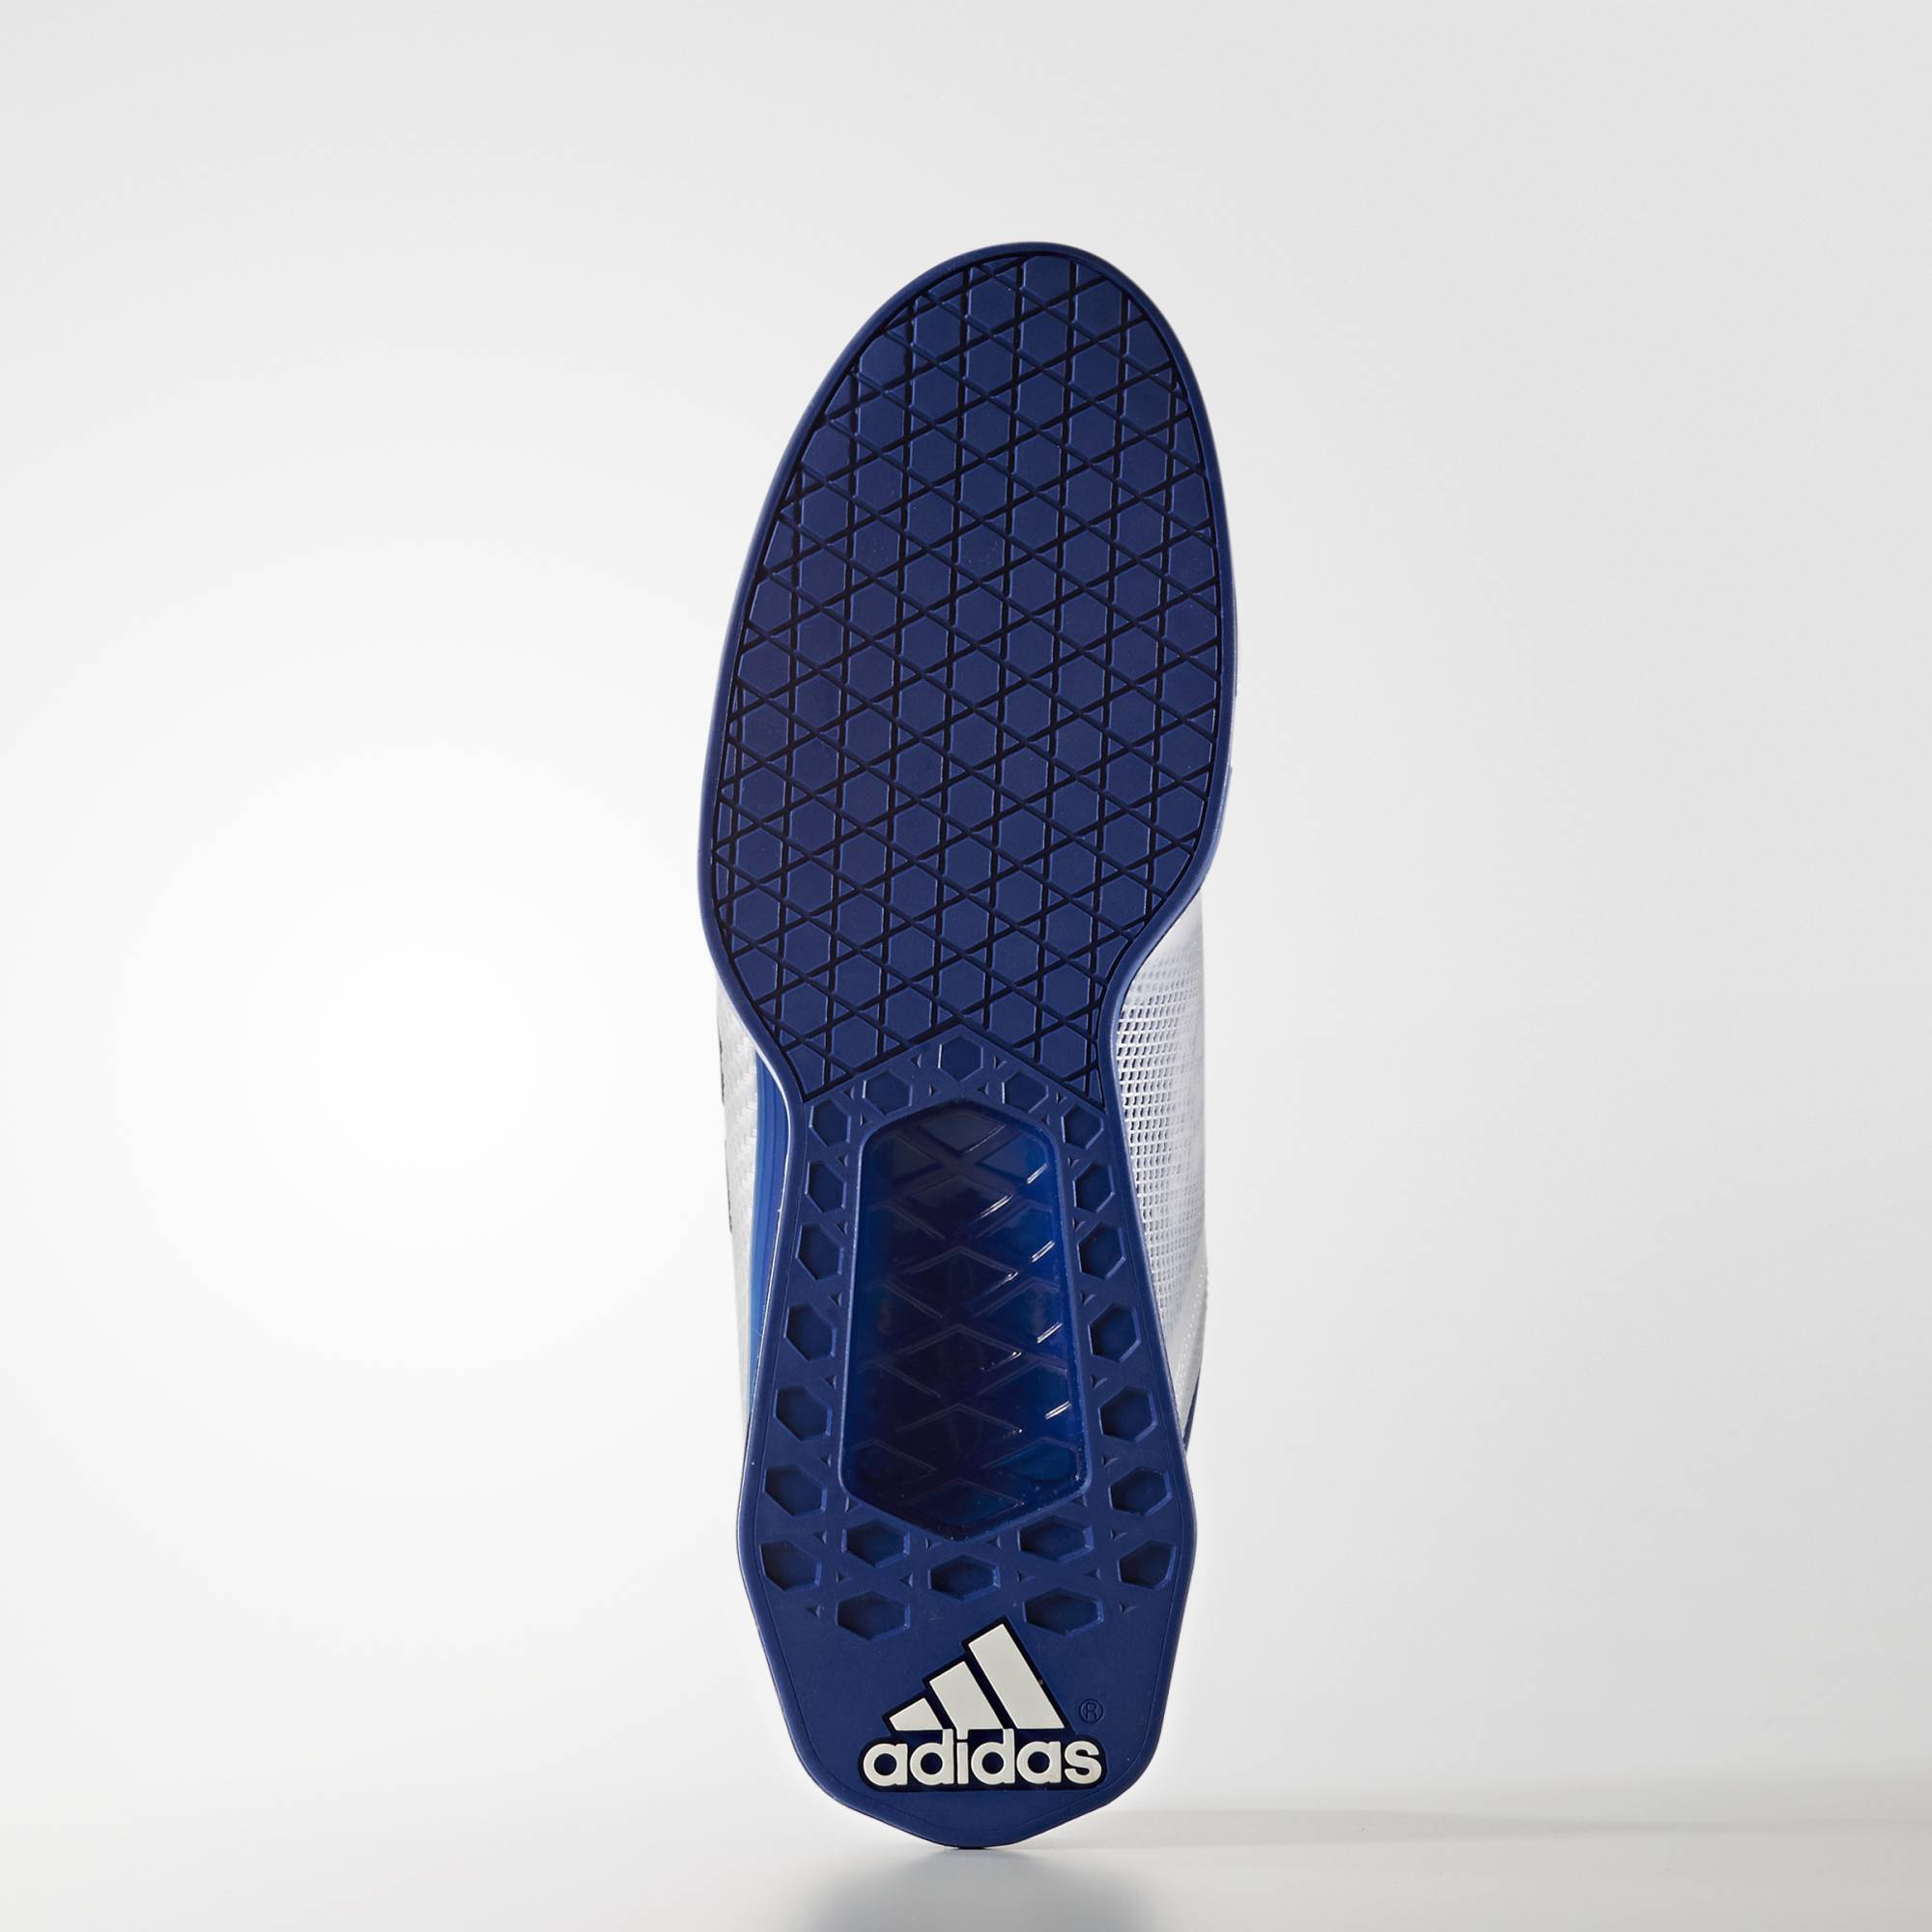 Adidas Leistung 16 II Olympic Weightlifting heel